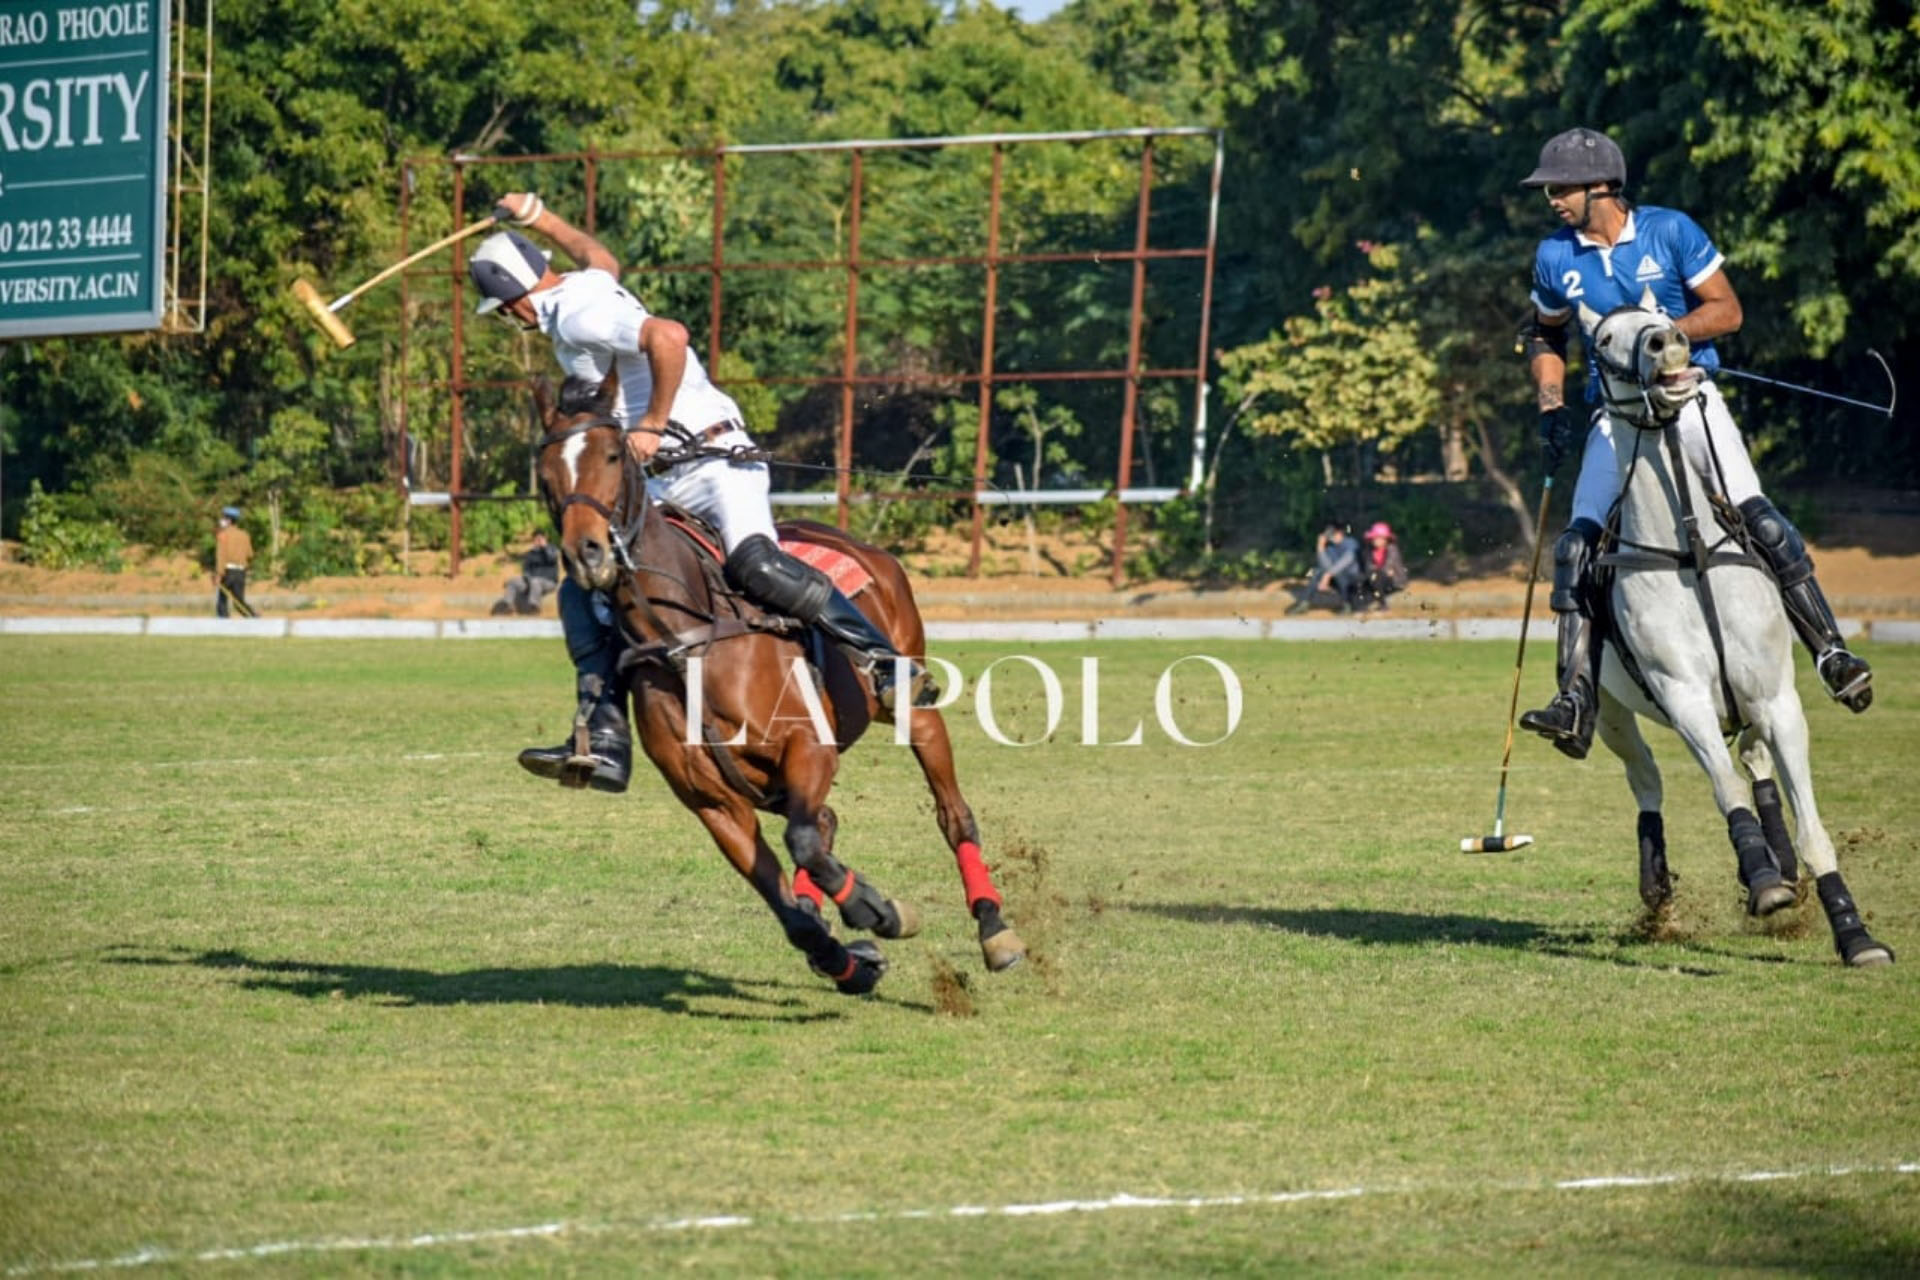 THE PINK CITY HOSTS THE RAJASTHAN POLO CLUB 4 GOAL TOURNAMENT